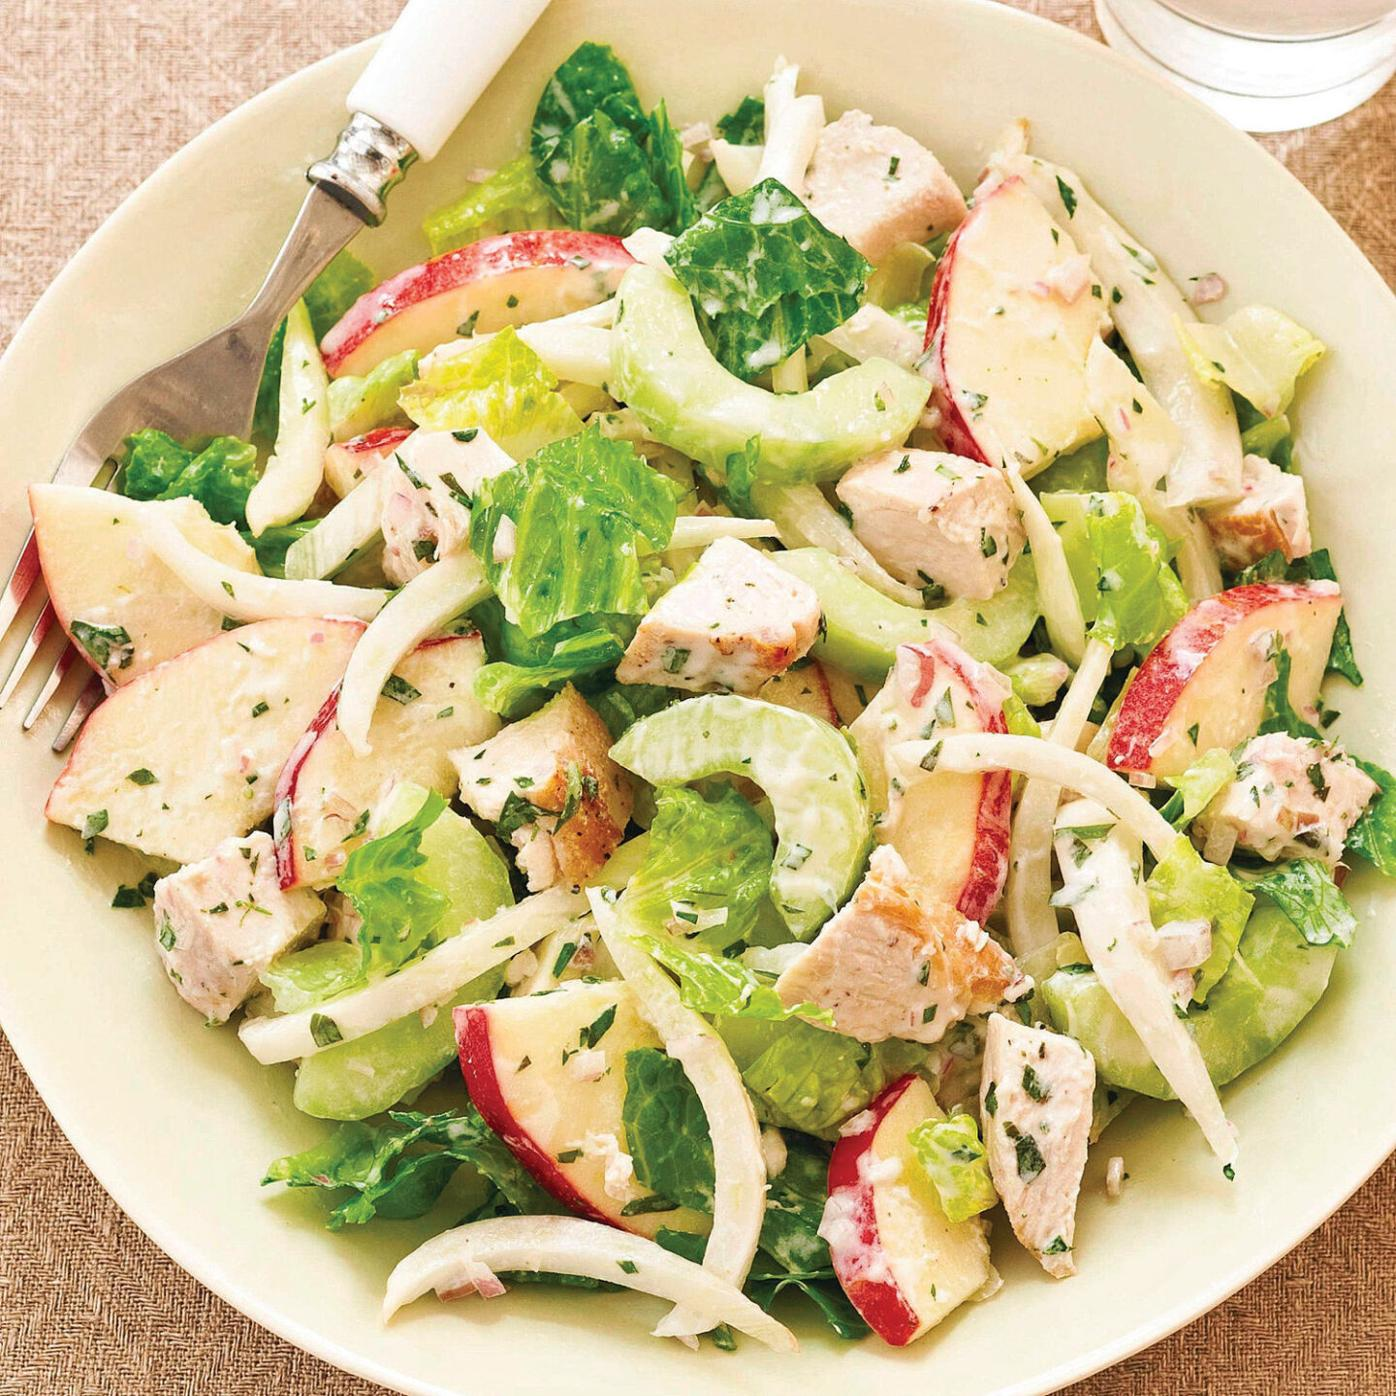 Cucumber, fennel, apples and romaine sing in this salad